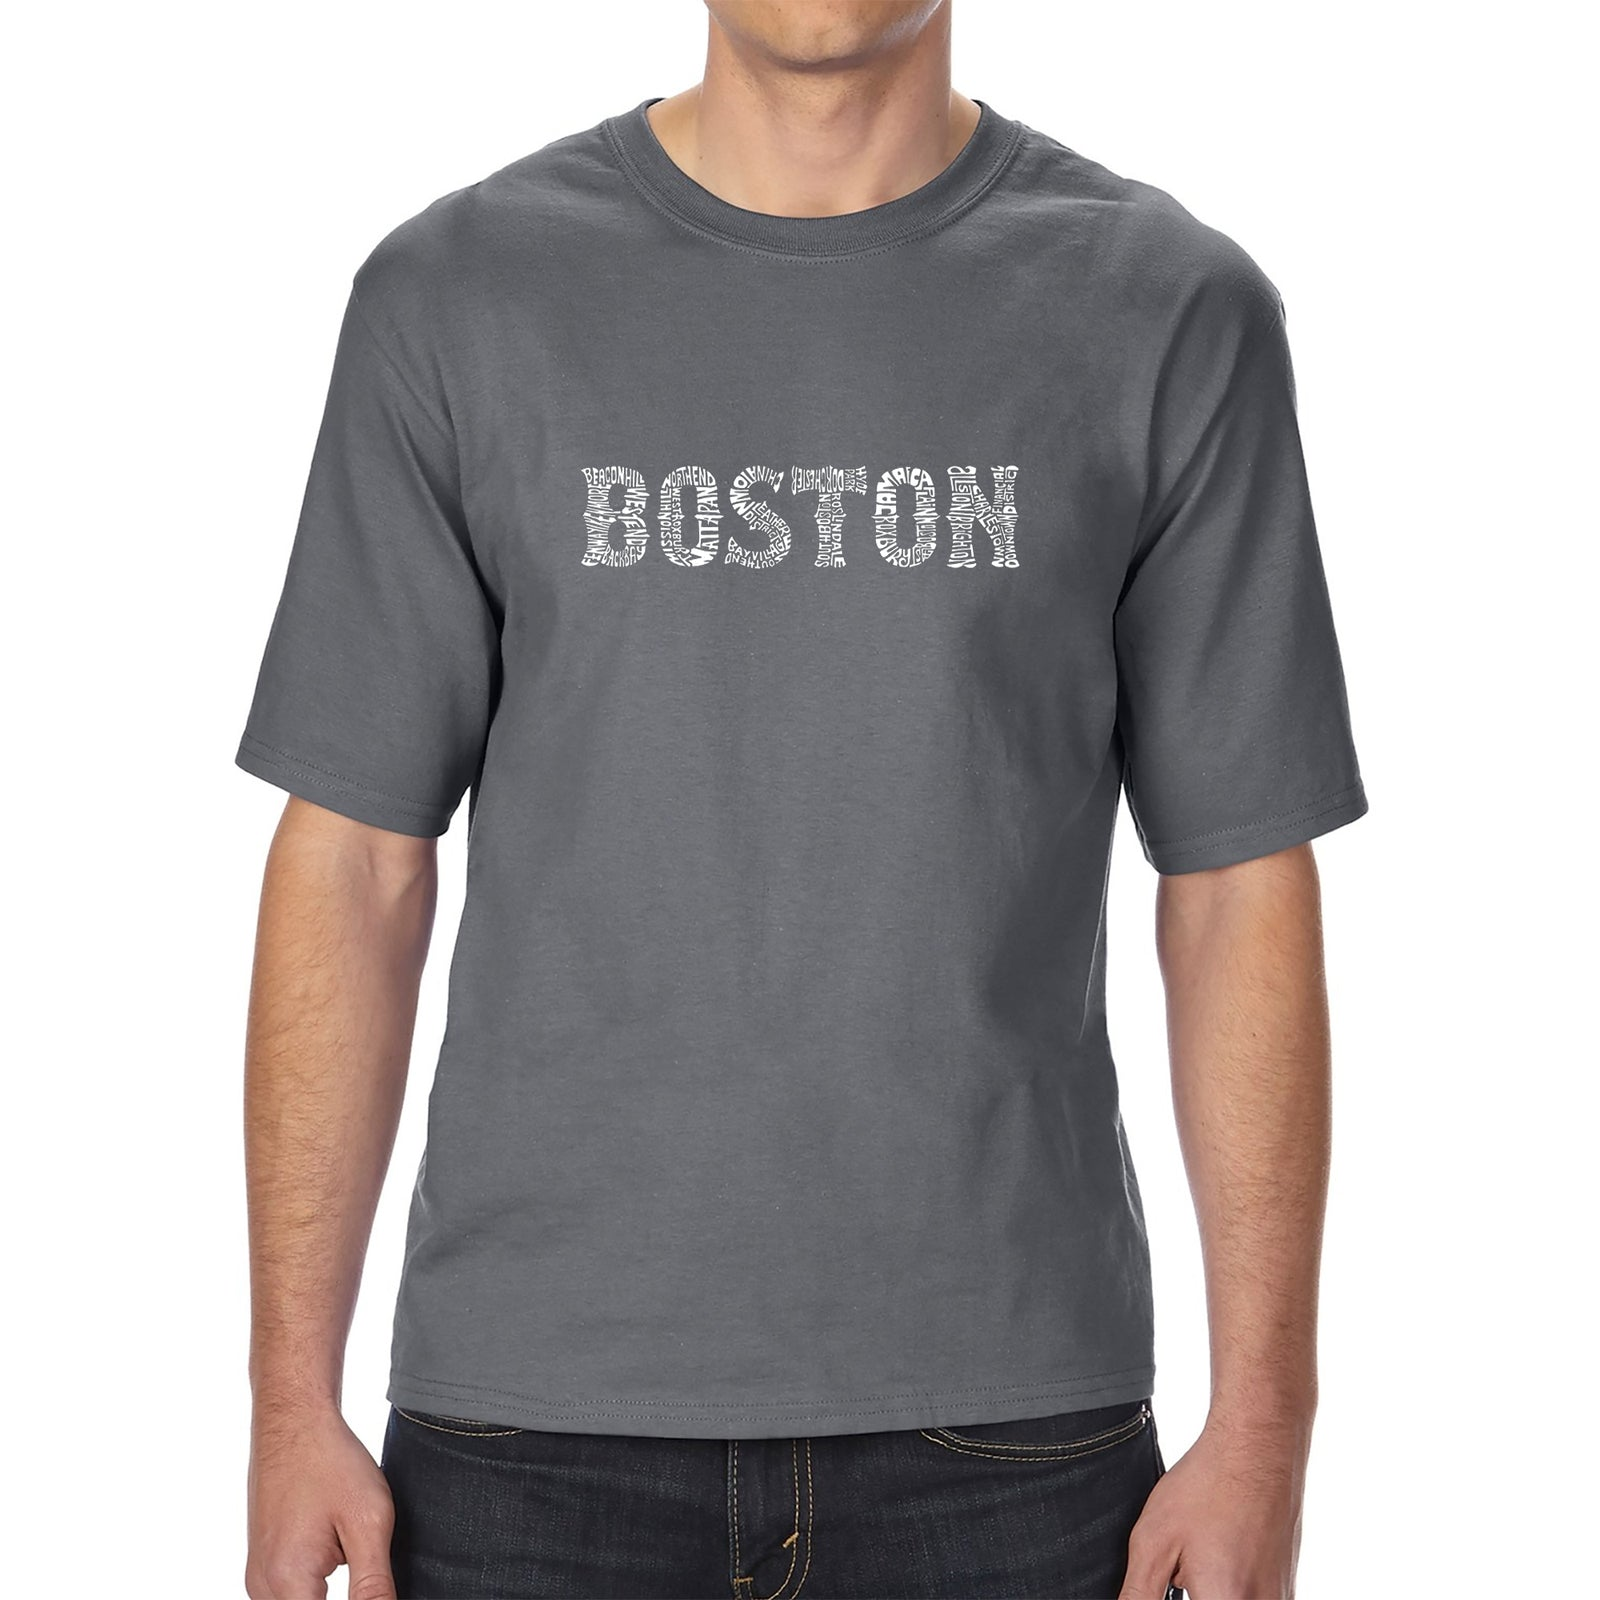 Men's Tall and Long Word Art T-shirt - BOSTON NEIGHBORHOODS